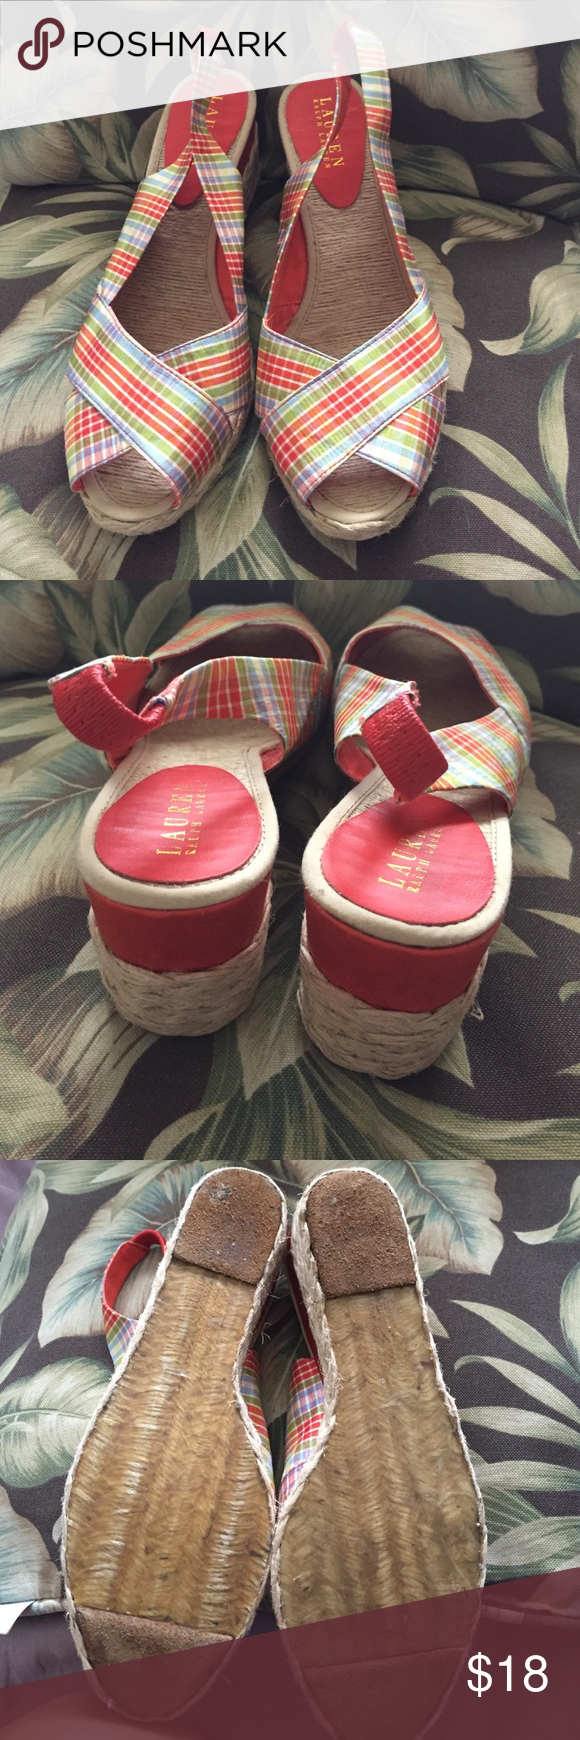 Ralph Lauren wedge EUC. Only worn once. Size 8.5. Colors are orange, light blue, lime green, yellow and white Ralph Lauren Shoes Wedges